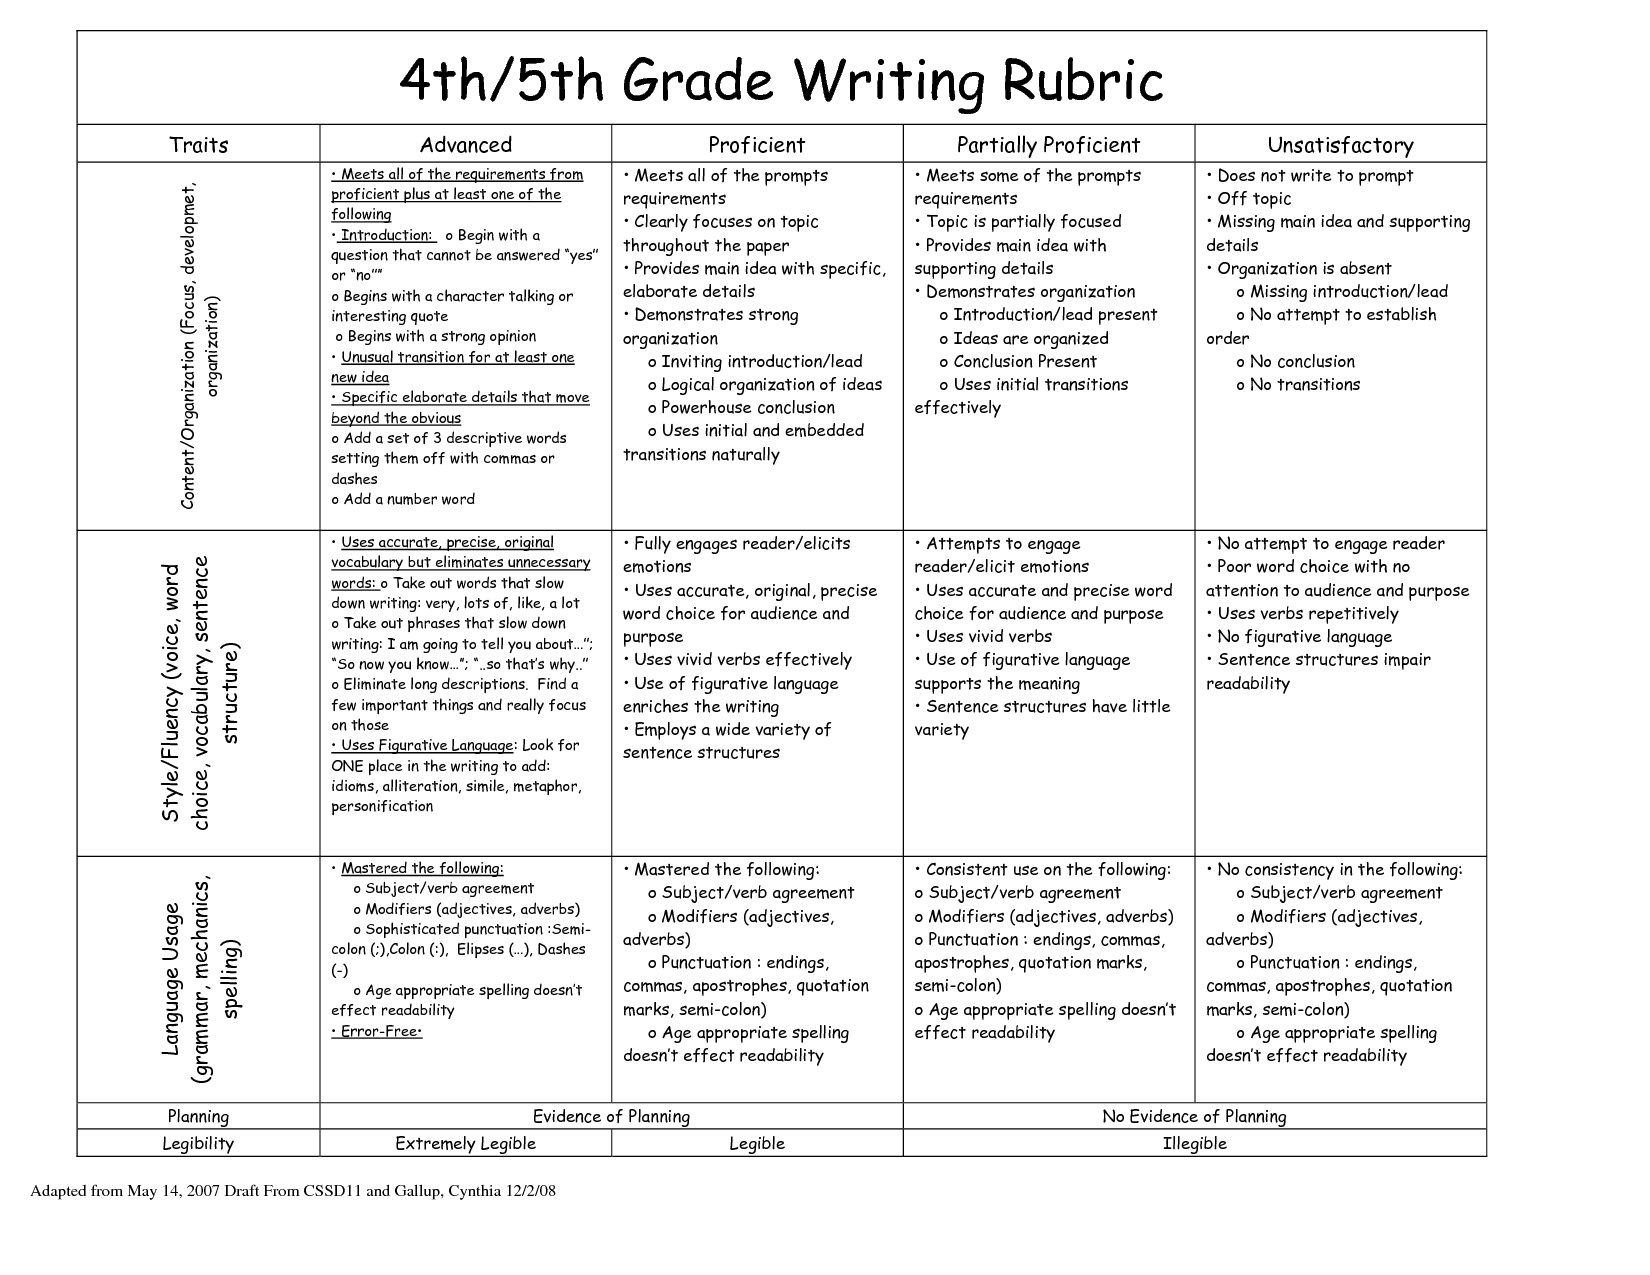 opinion essay rubric okl mindsprout co opinion essay rubric